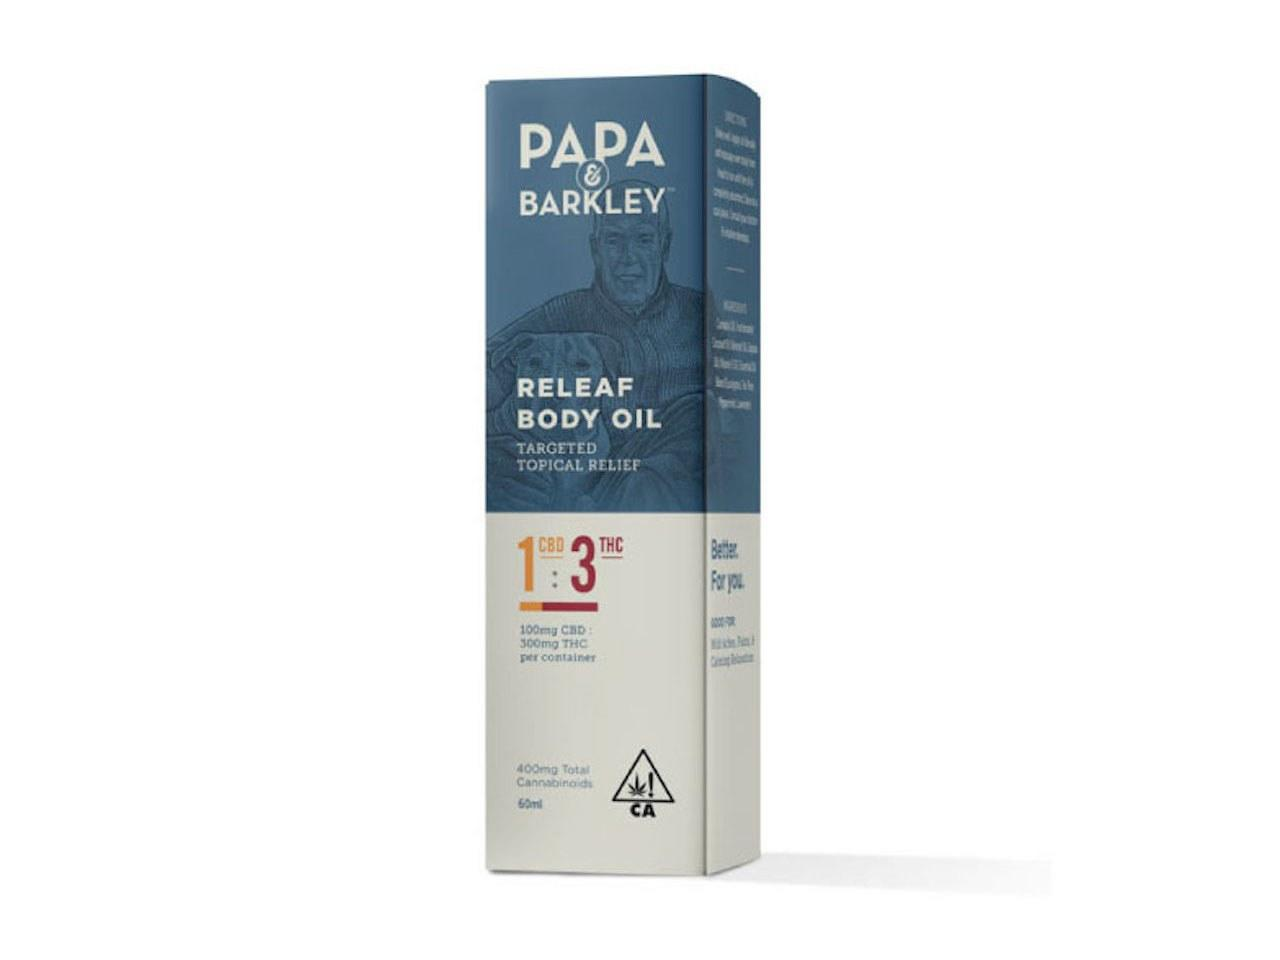 """<p>The company may be better known for its <a rel=""""nofollow"""" href=""""https://papaandbarkley.com/product/releaf-balms"""">pain-relieving balms</a>, but this topical cannabis-infused coconut oil claims to soothe and relax you all over, meaning it could be the perfect ingredient in a sensual massage. According to the company, it's best to massage it into the skin for about 20 to 30 seconds to feel the effects. It should begin working within 15 minutes and last for up to three hours.</p> <p><strong>Buy it:</strong> Find it at a dispensary <a rel=""""nofollow"""" href=""""https://papaandbarkley.com/store-locator"""">here</a>.</p>"""